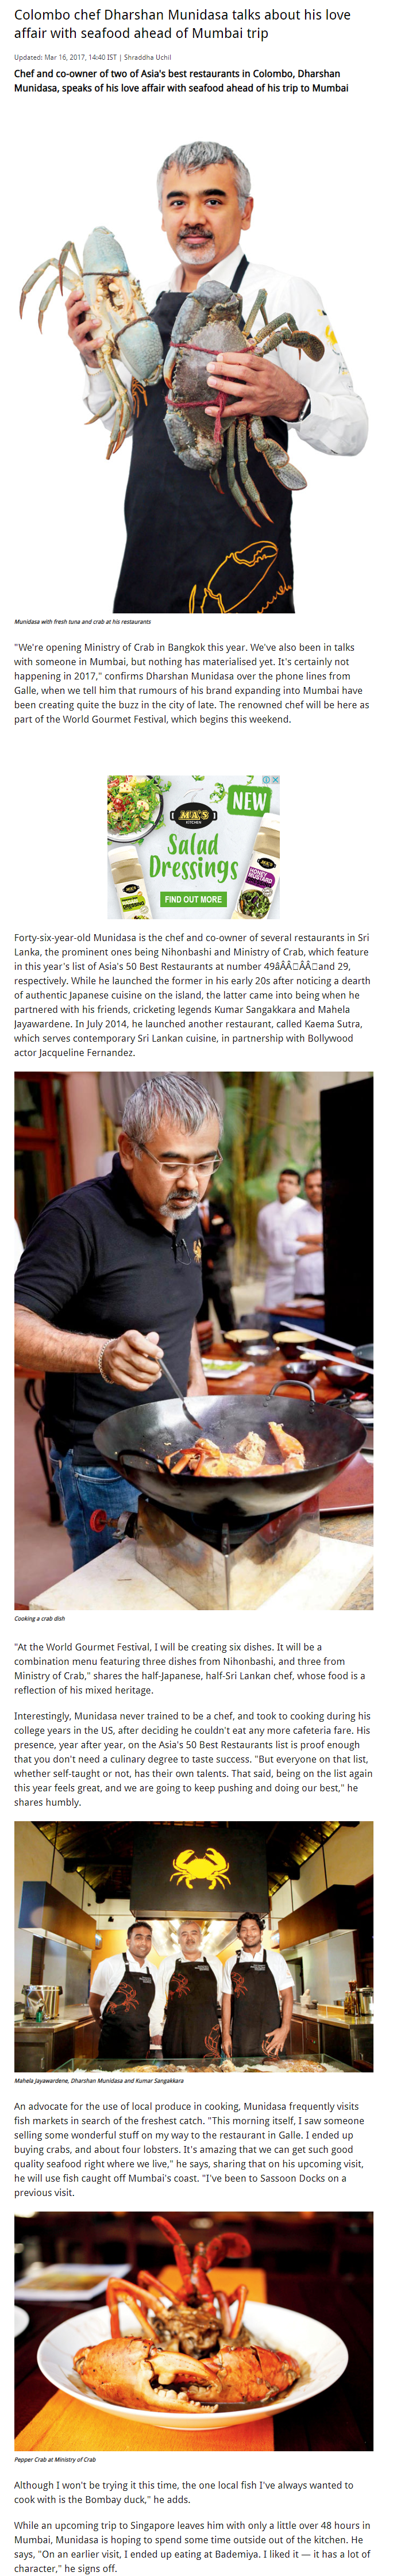 Colombo chef Dharshan Munidasa talks about his love affair with seafood ahead of Mumbai trip